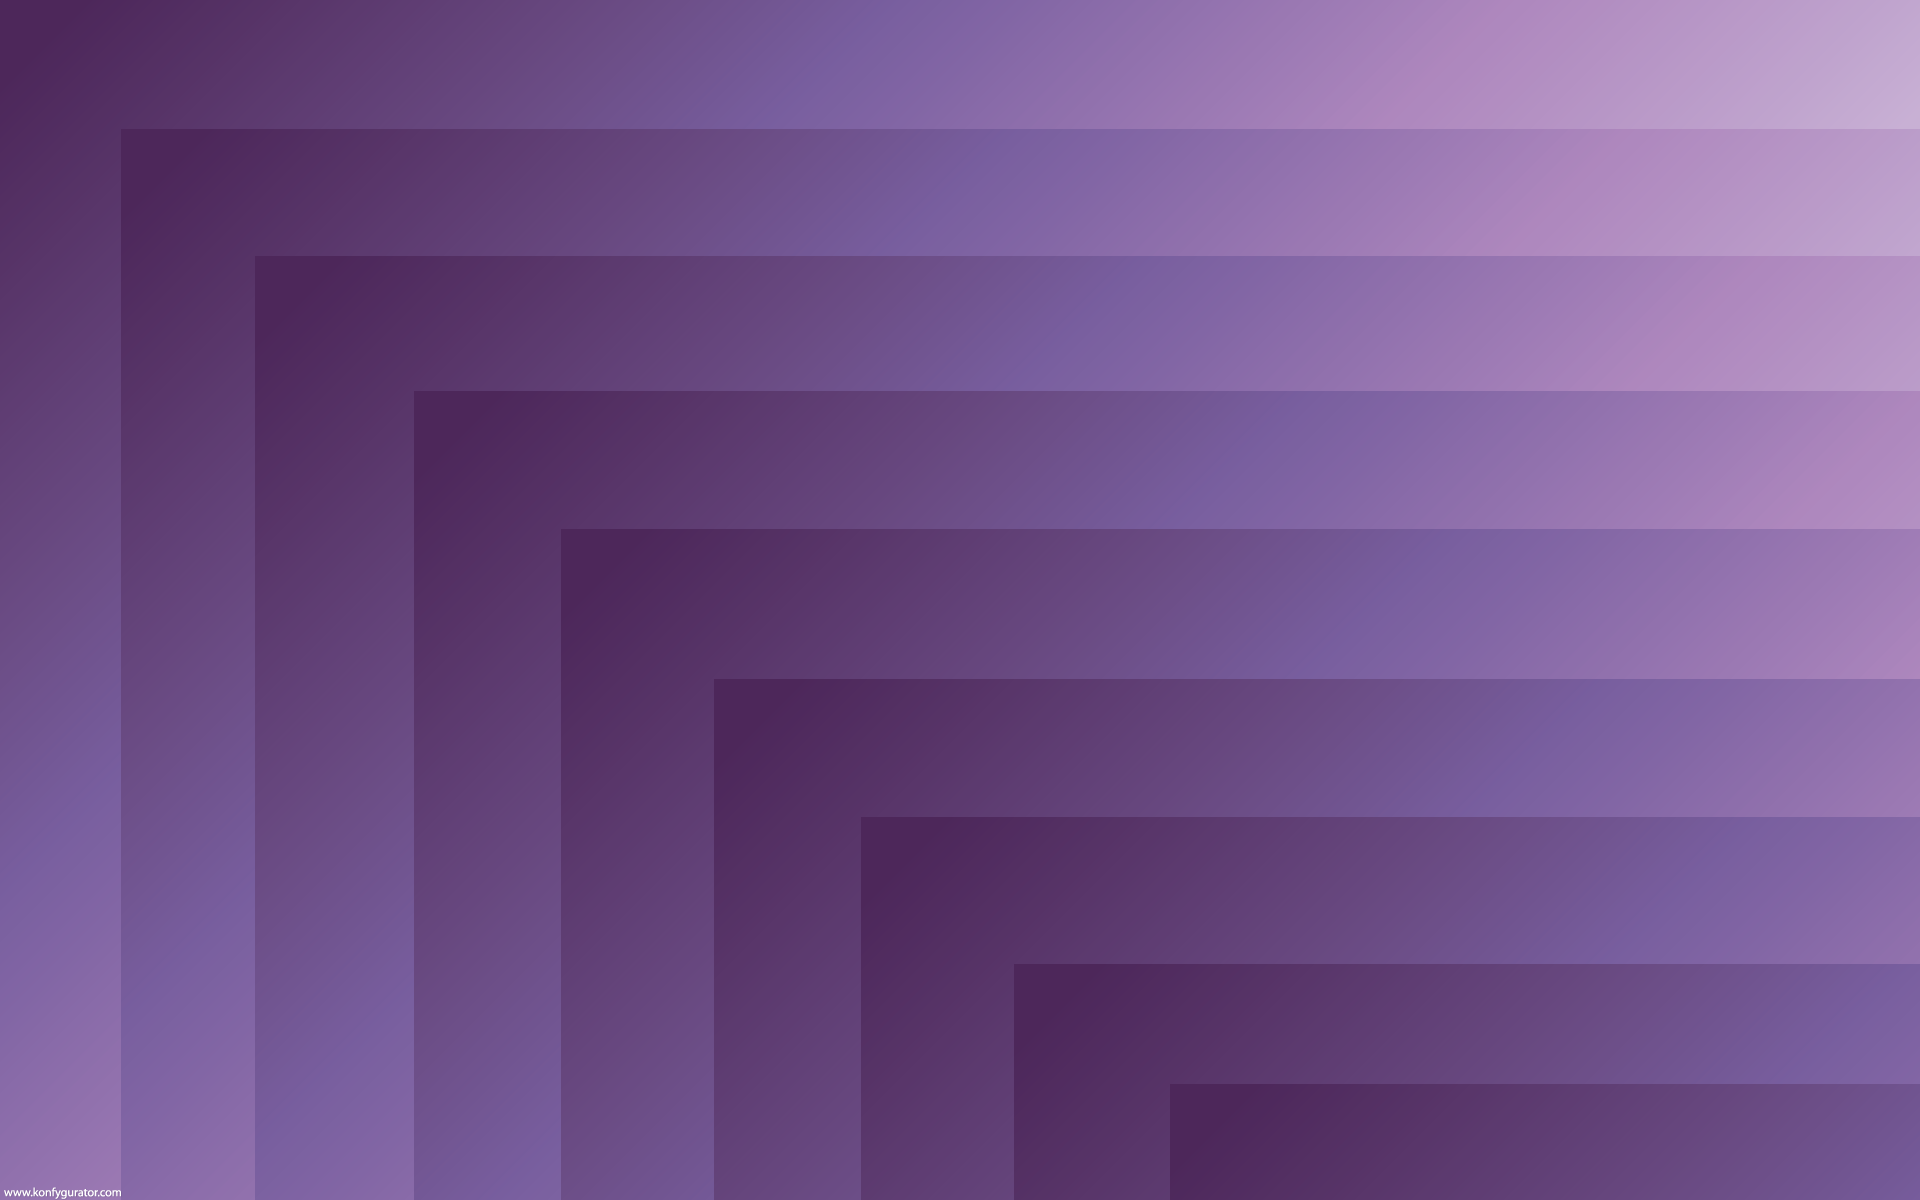 HD Wallpapers - 3D & Abstract - tunnel, perspective, purple